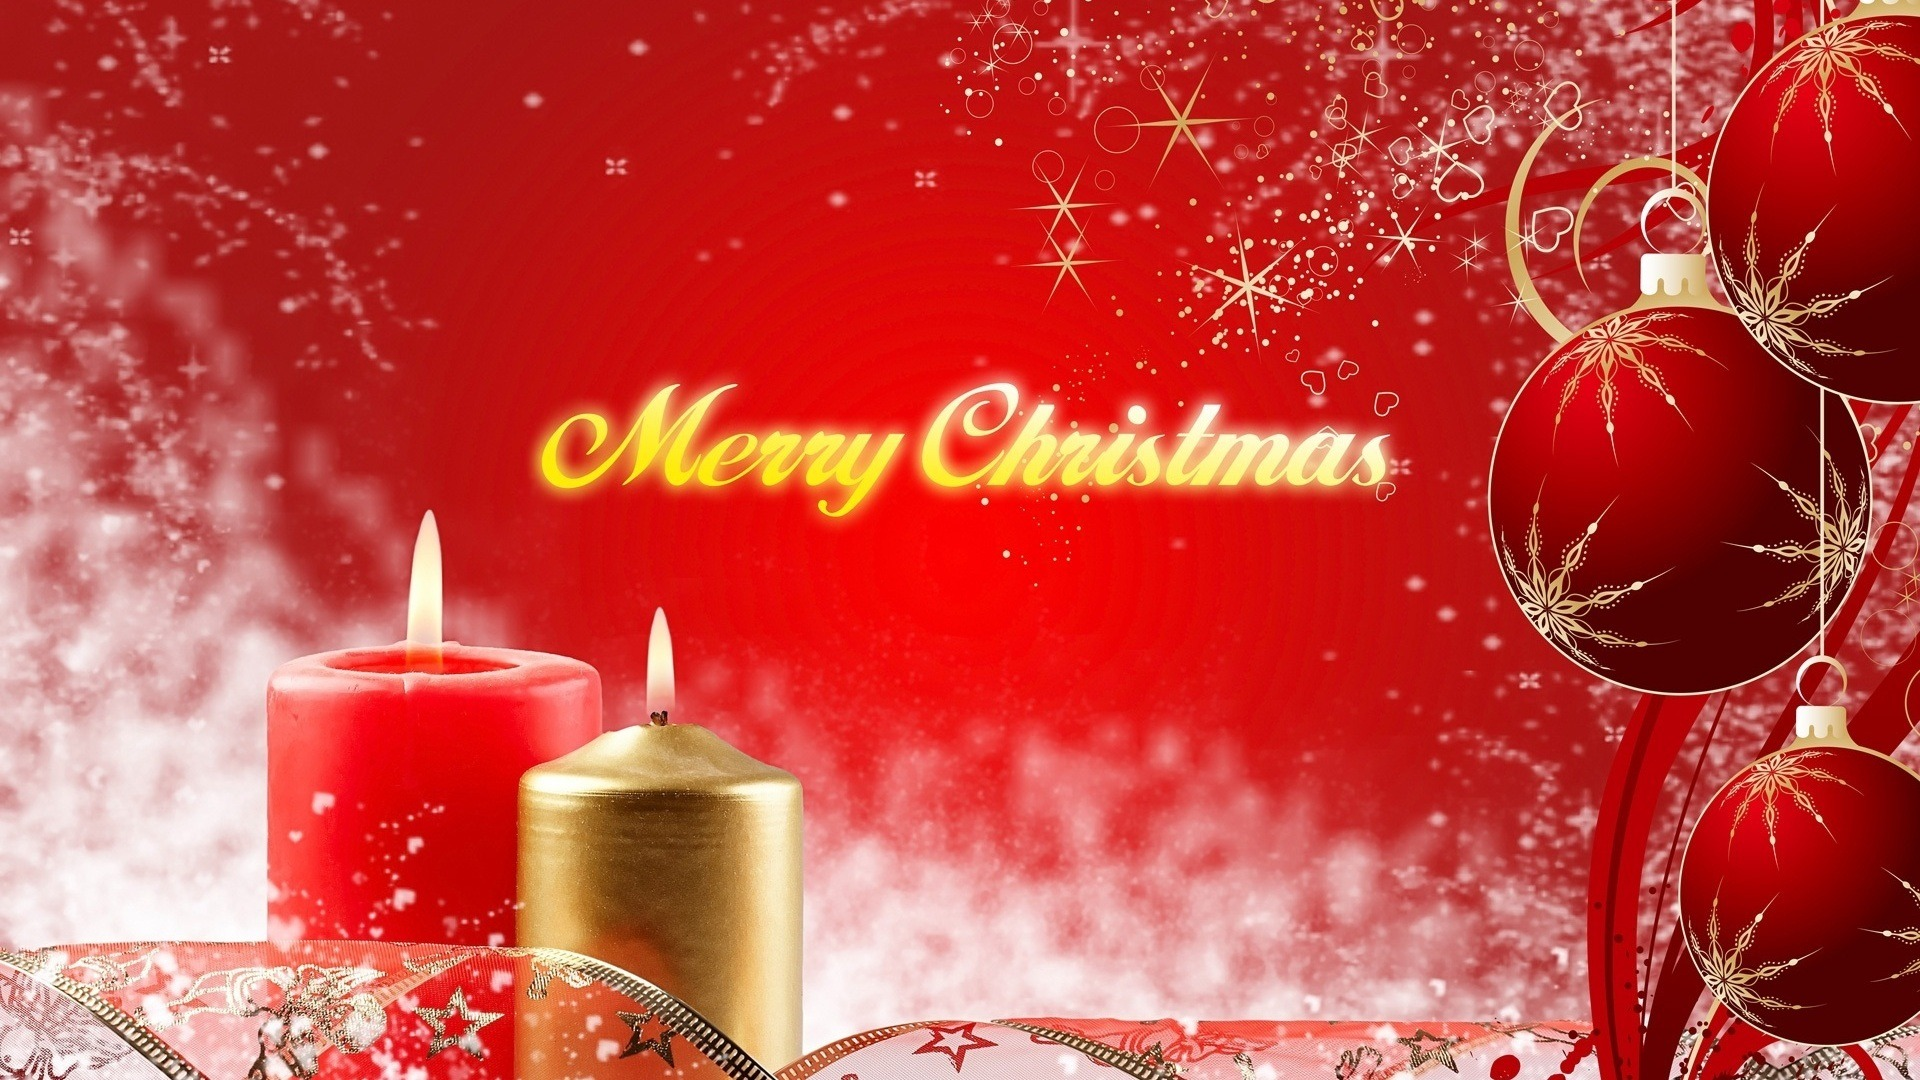 merry christmas red balls candles cute hd wallpaper